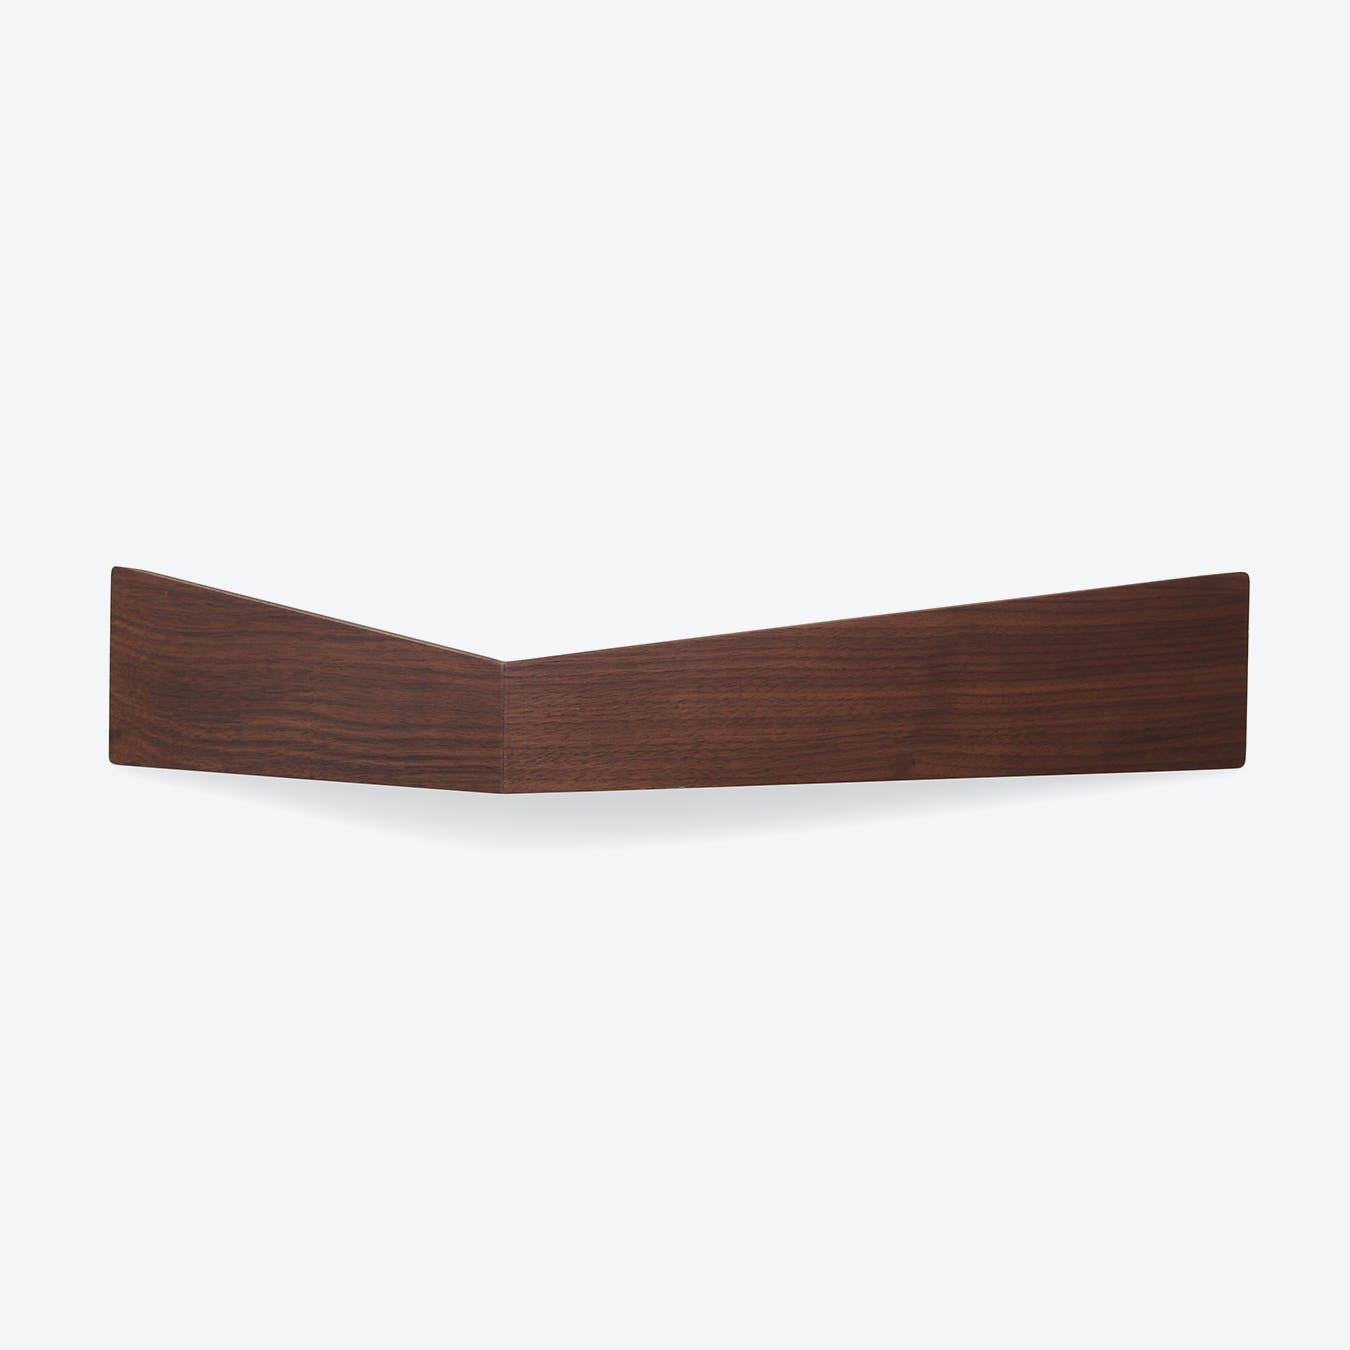 Pelican Shelf L - Walnut